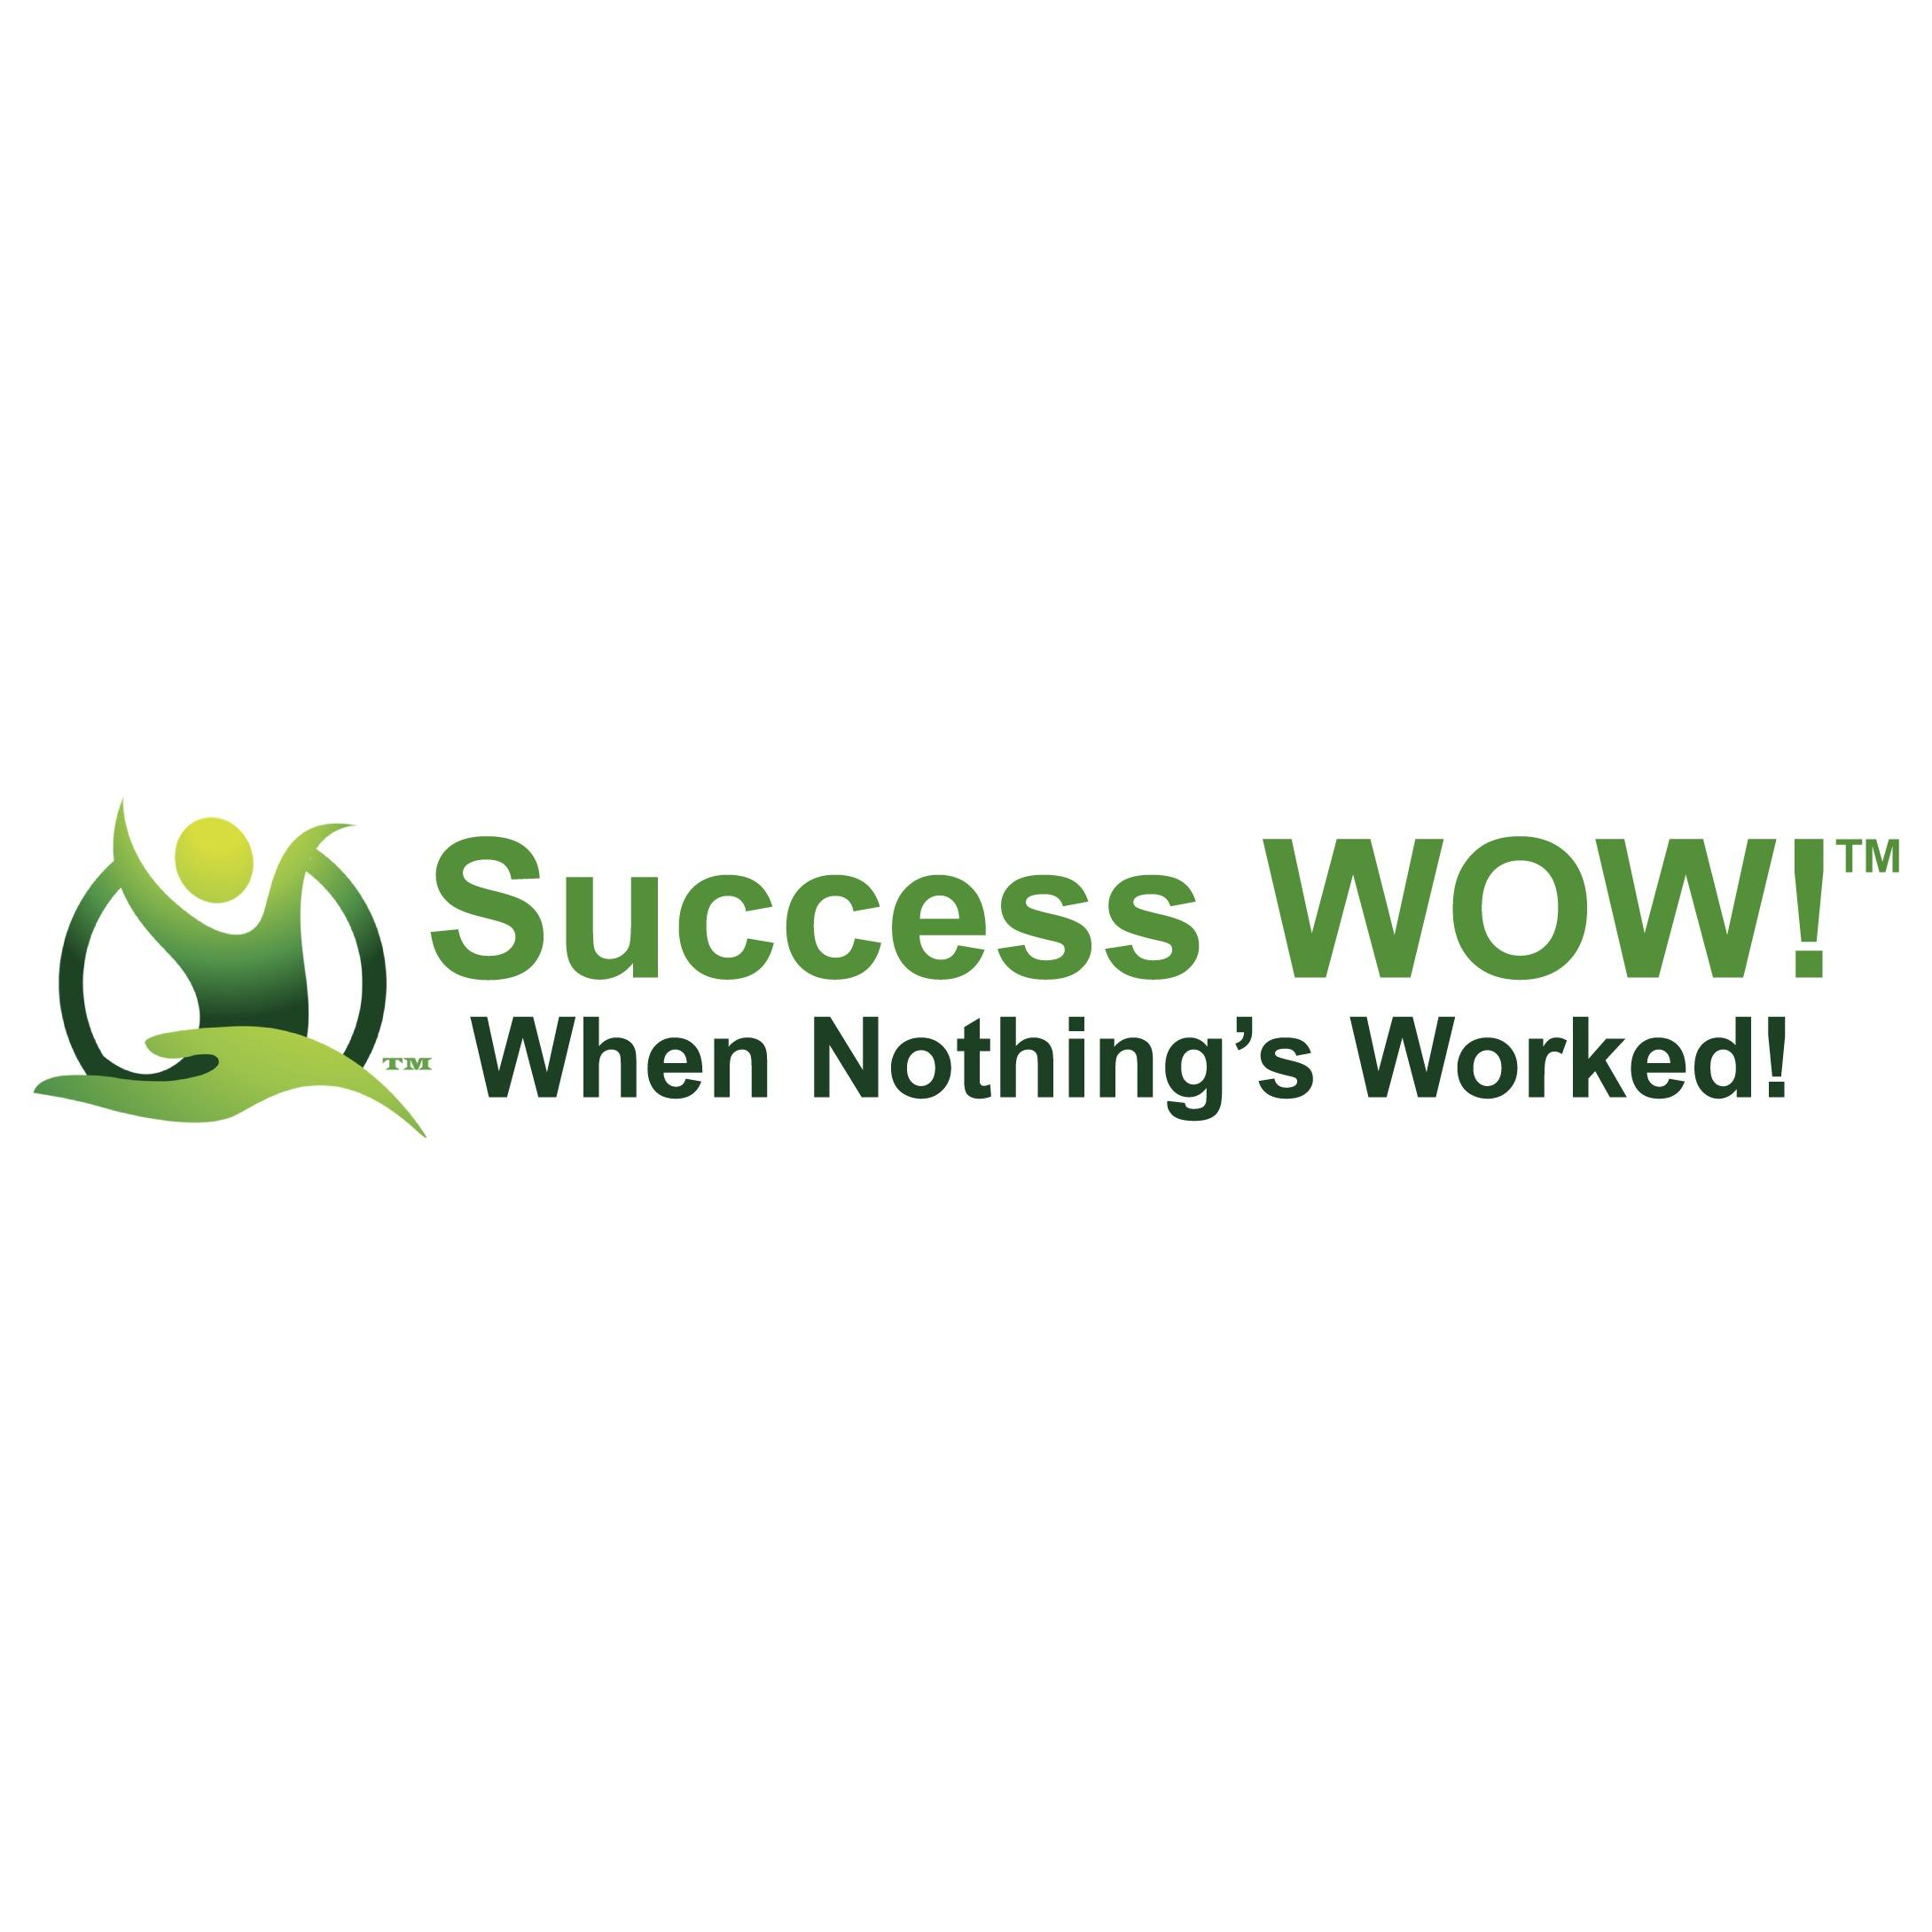 Success WOW! - Coaching, NLP, Hypnosis, Transformation Institute image 9